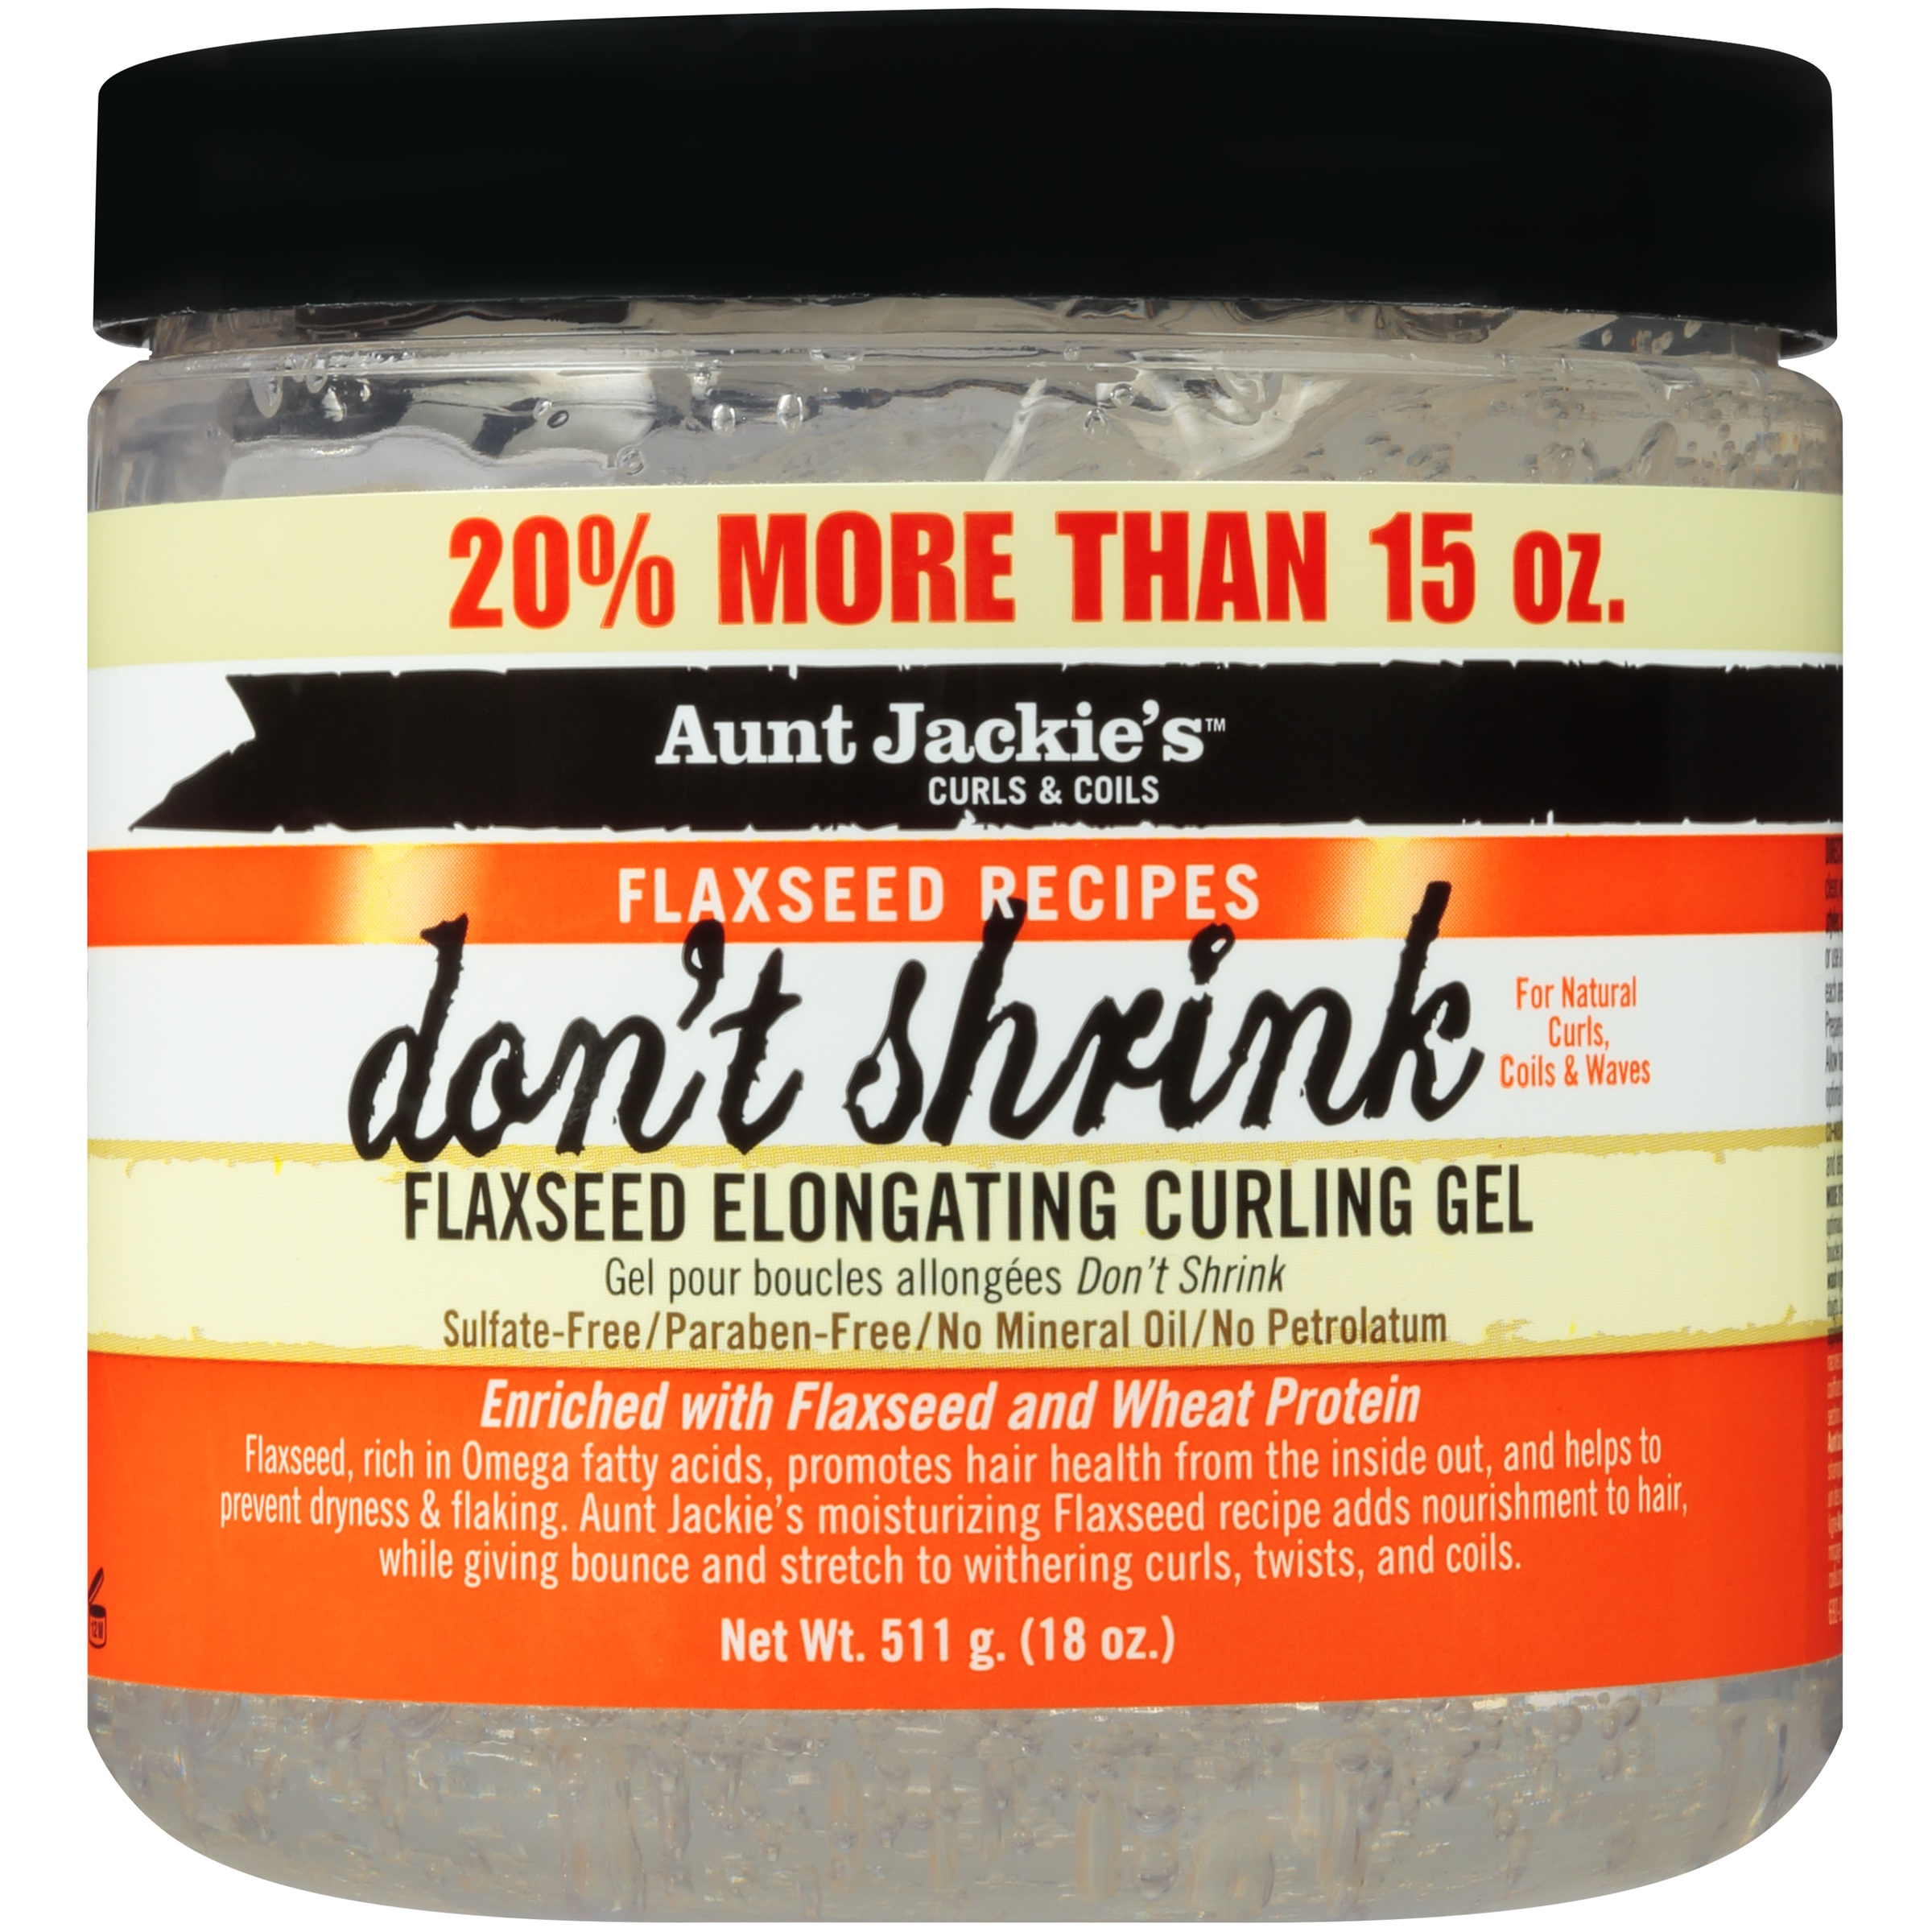 Aunt Jackie's™ Curls & Coils Flaxseed Recipes Don't Shrink Flaxseed Elongating Curling Gel 18 Oz. Jar by Aunt Jackie's